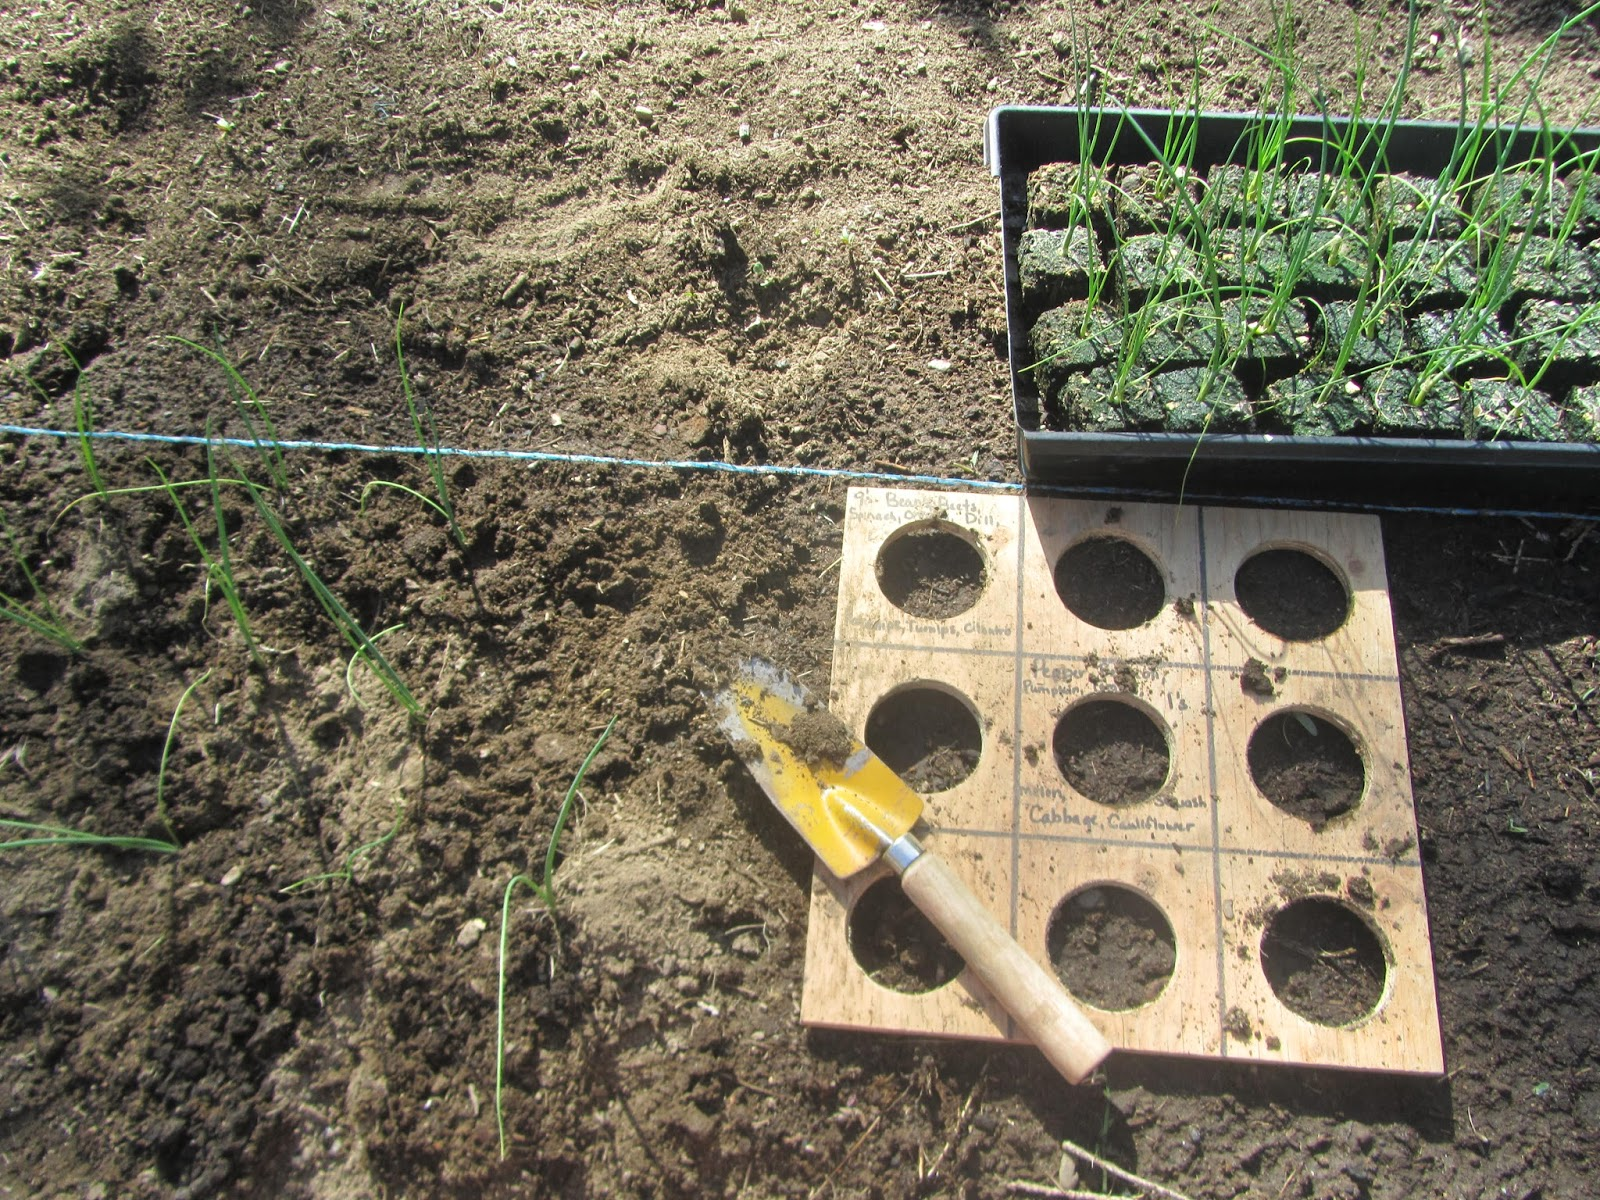 Planting Ailsa Craig onion starts with a square foot gardening board